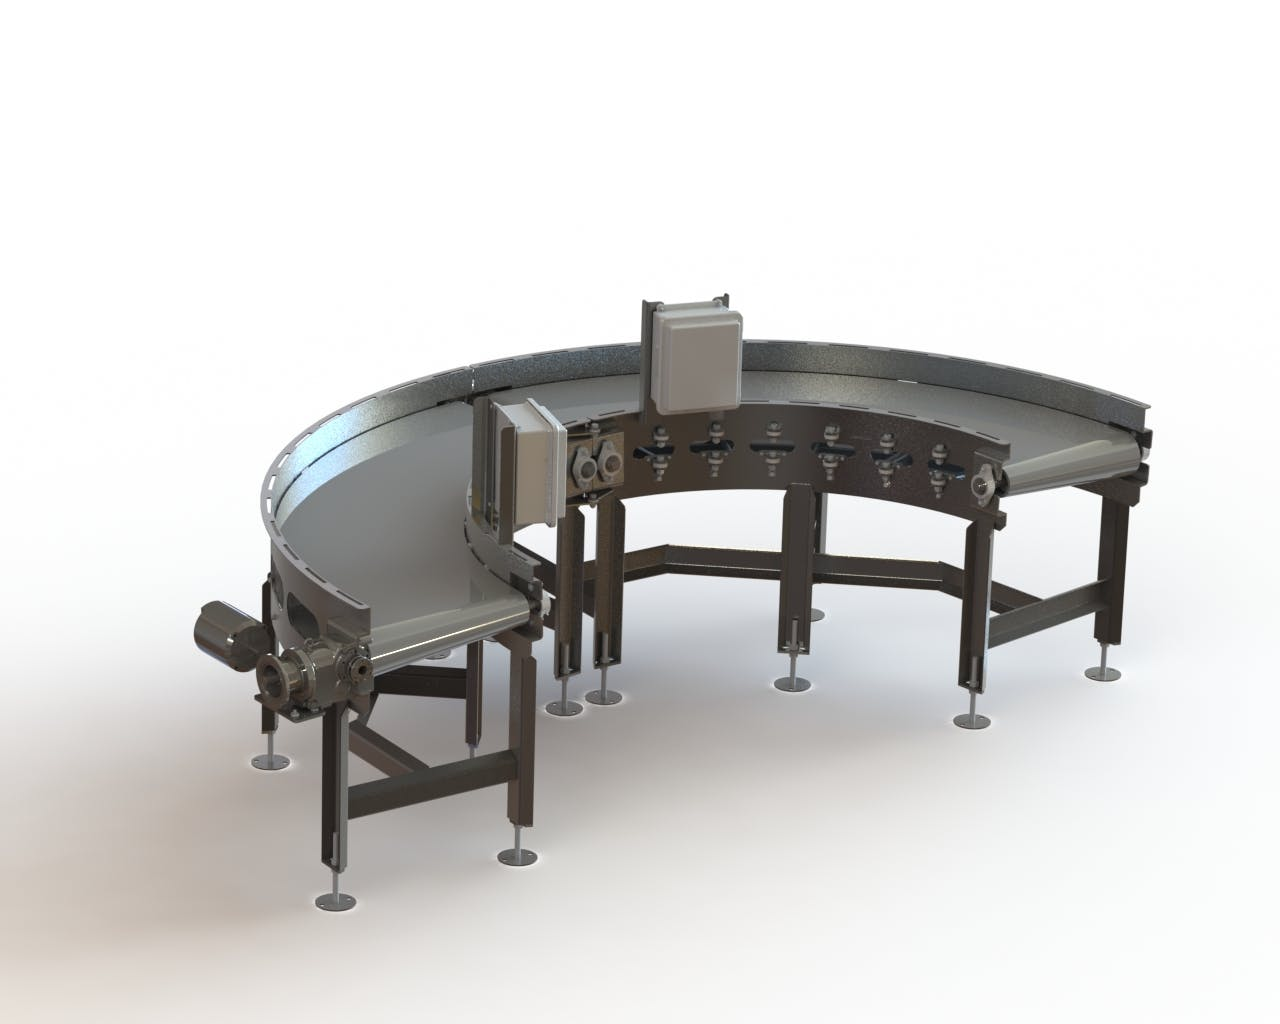 Double Zero-Tangent Radius Conveyors - Zero Tangent Radius Conveyor - sold by Fusion Tech Integrated Inc.